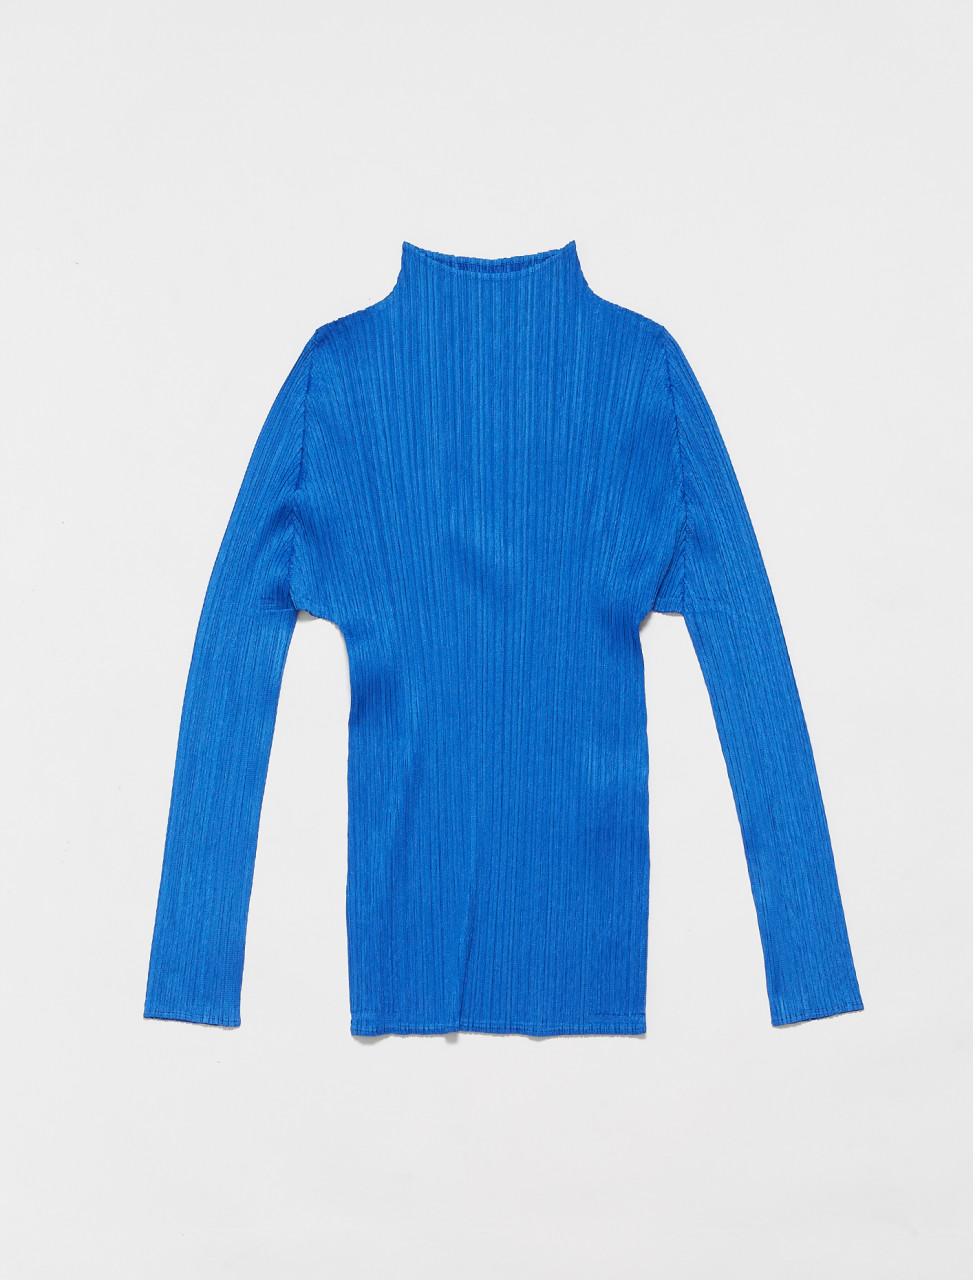 PP16JK904-72 PLEATS PLEASE ISSEY MIYAKE HIGH NECK TOP IN BLUE